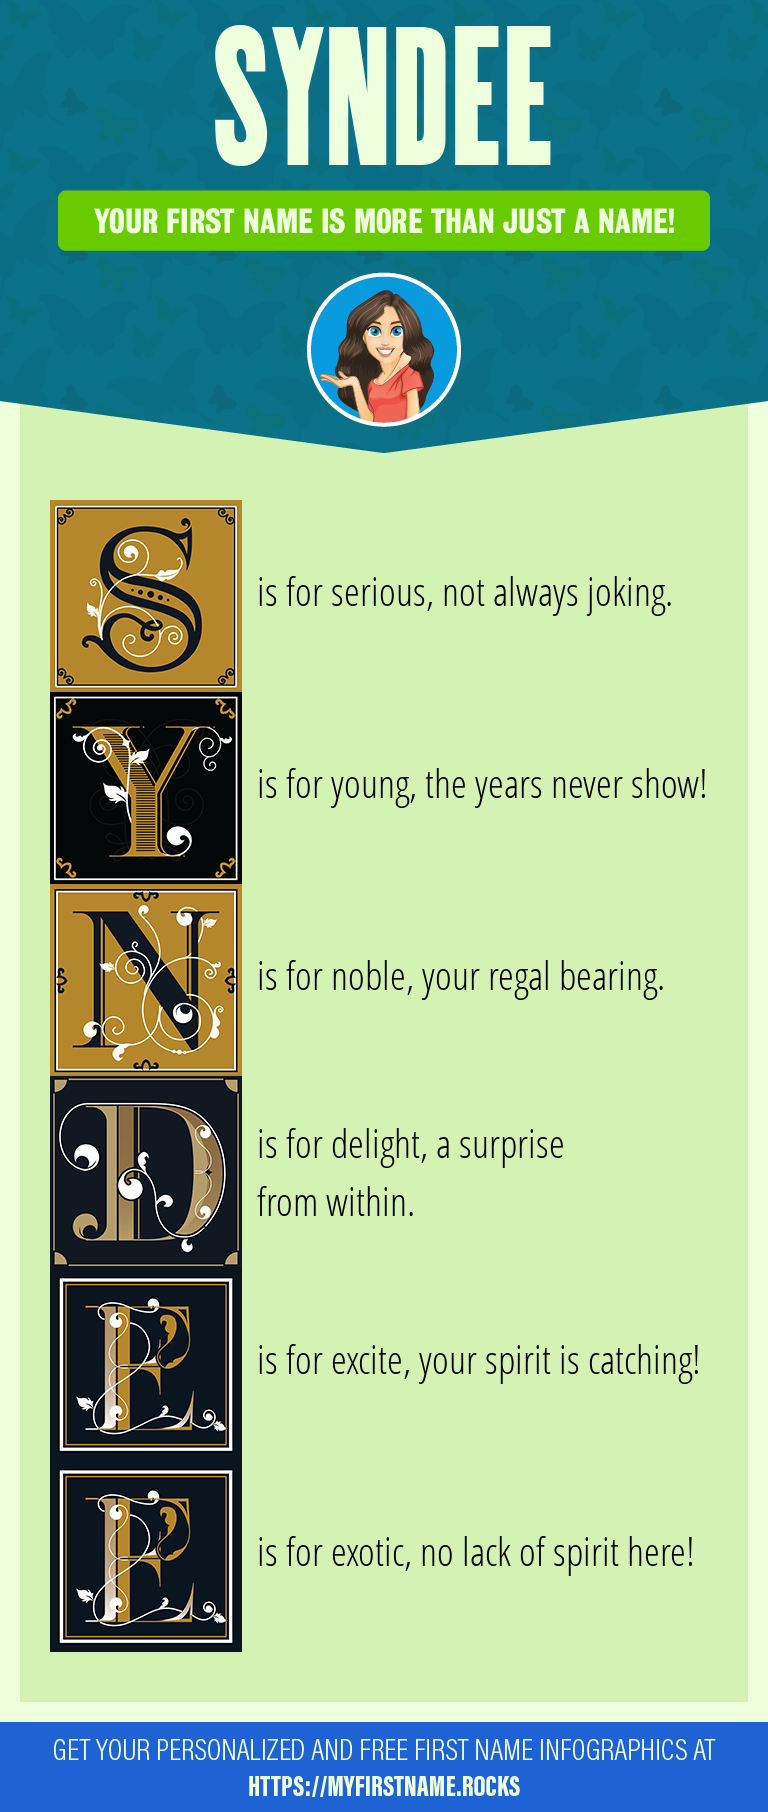 Syndee Infographics